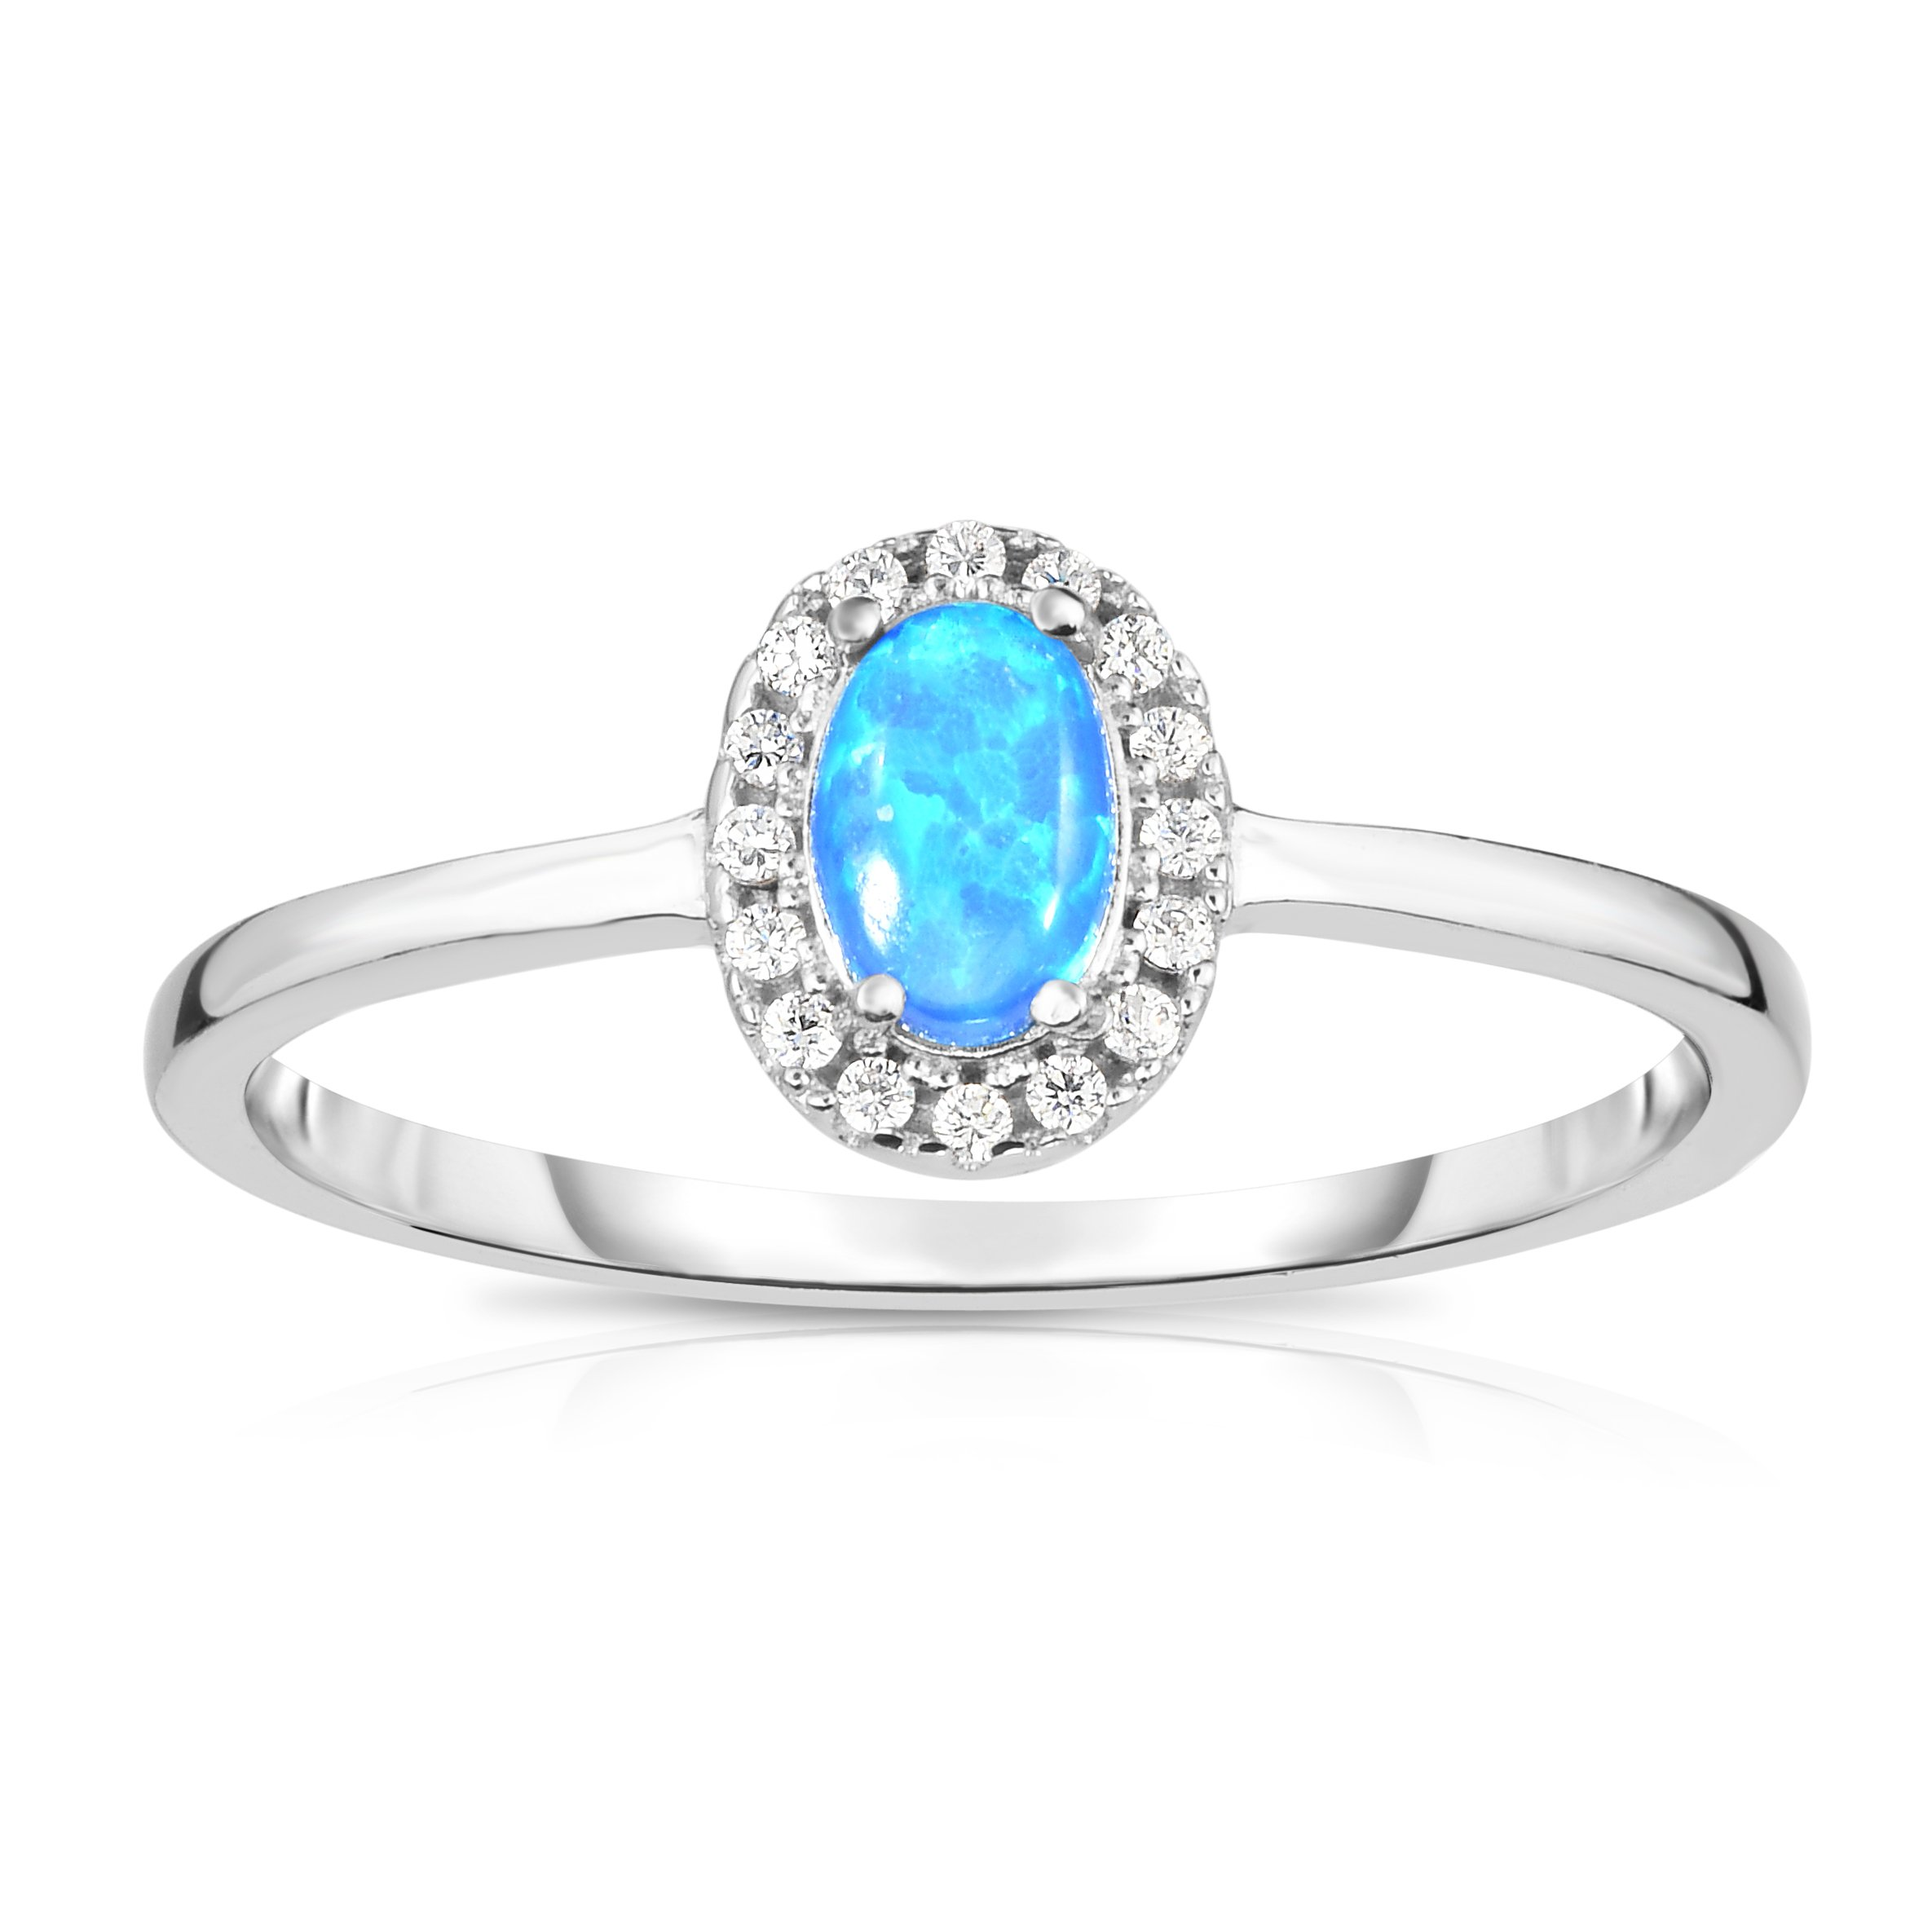 Solid Sterling Silver Synthetic Opal with White Cubic Zirconia Halo Jacket Princess Diana Designer Ring. (6)